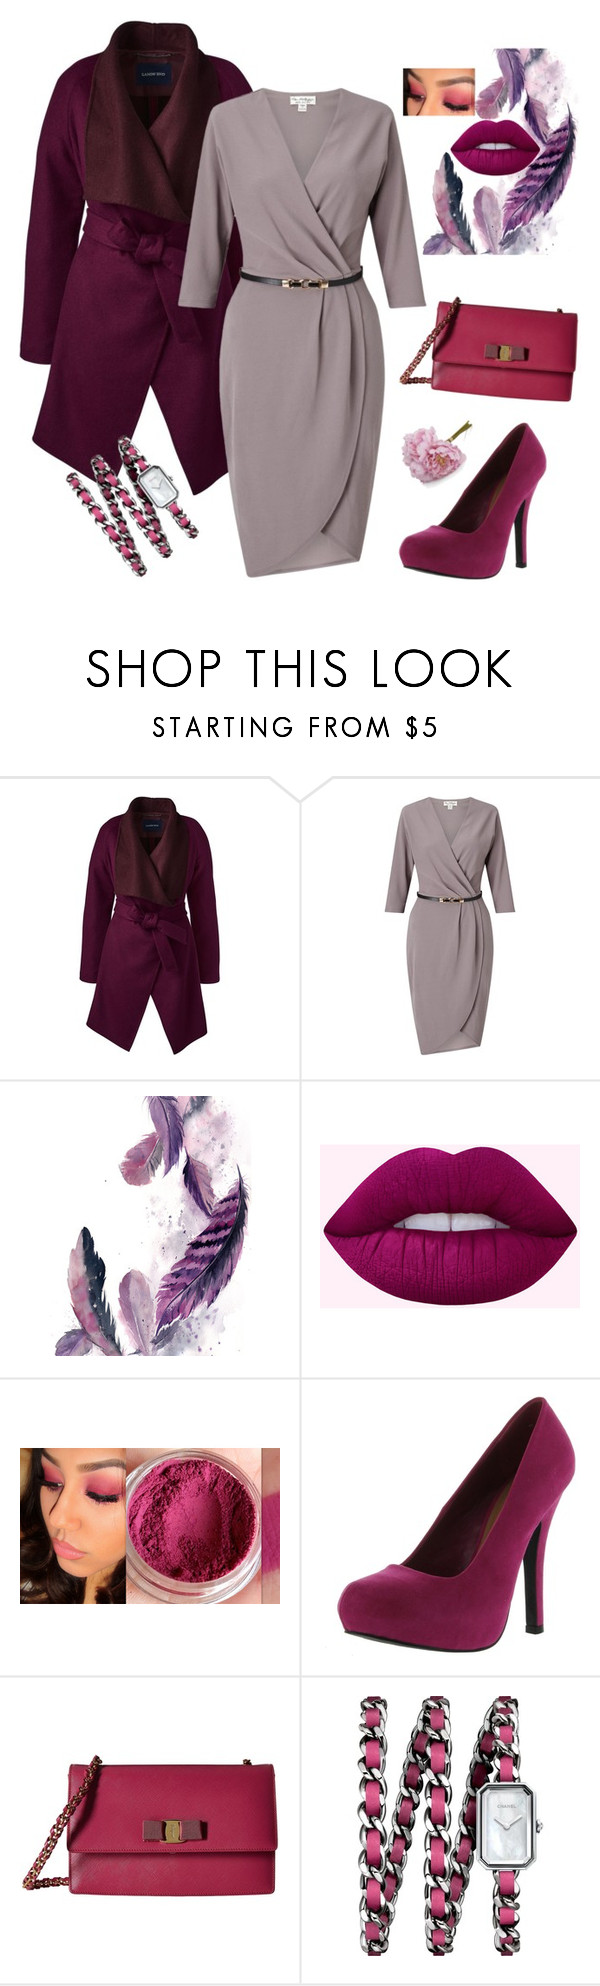 """Untitled #670"" by domla ❤ liked on Polyvore featuring Lands' End, Miss Selfridge, Qupid, Salvatore Ferragamo, Chanel and Crate and Barrel"